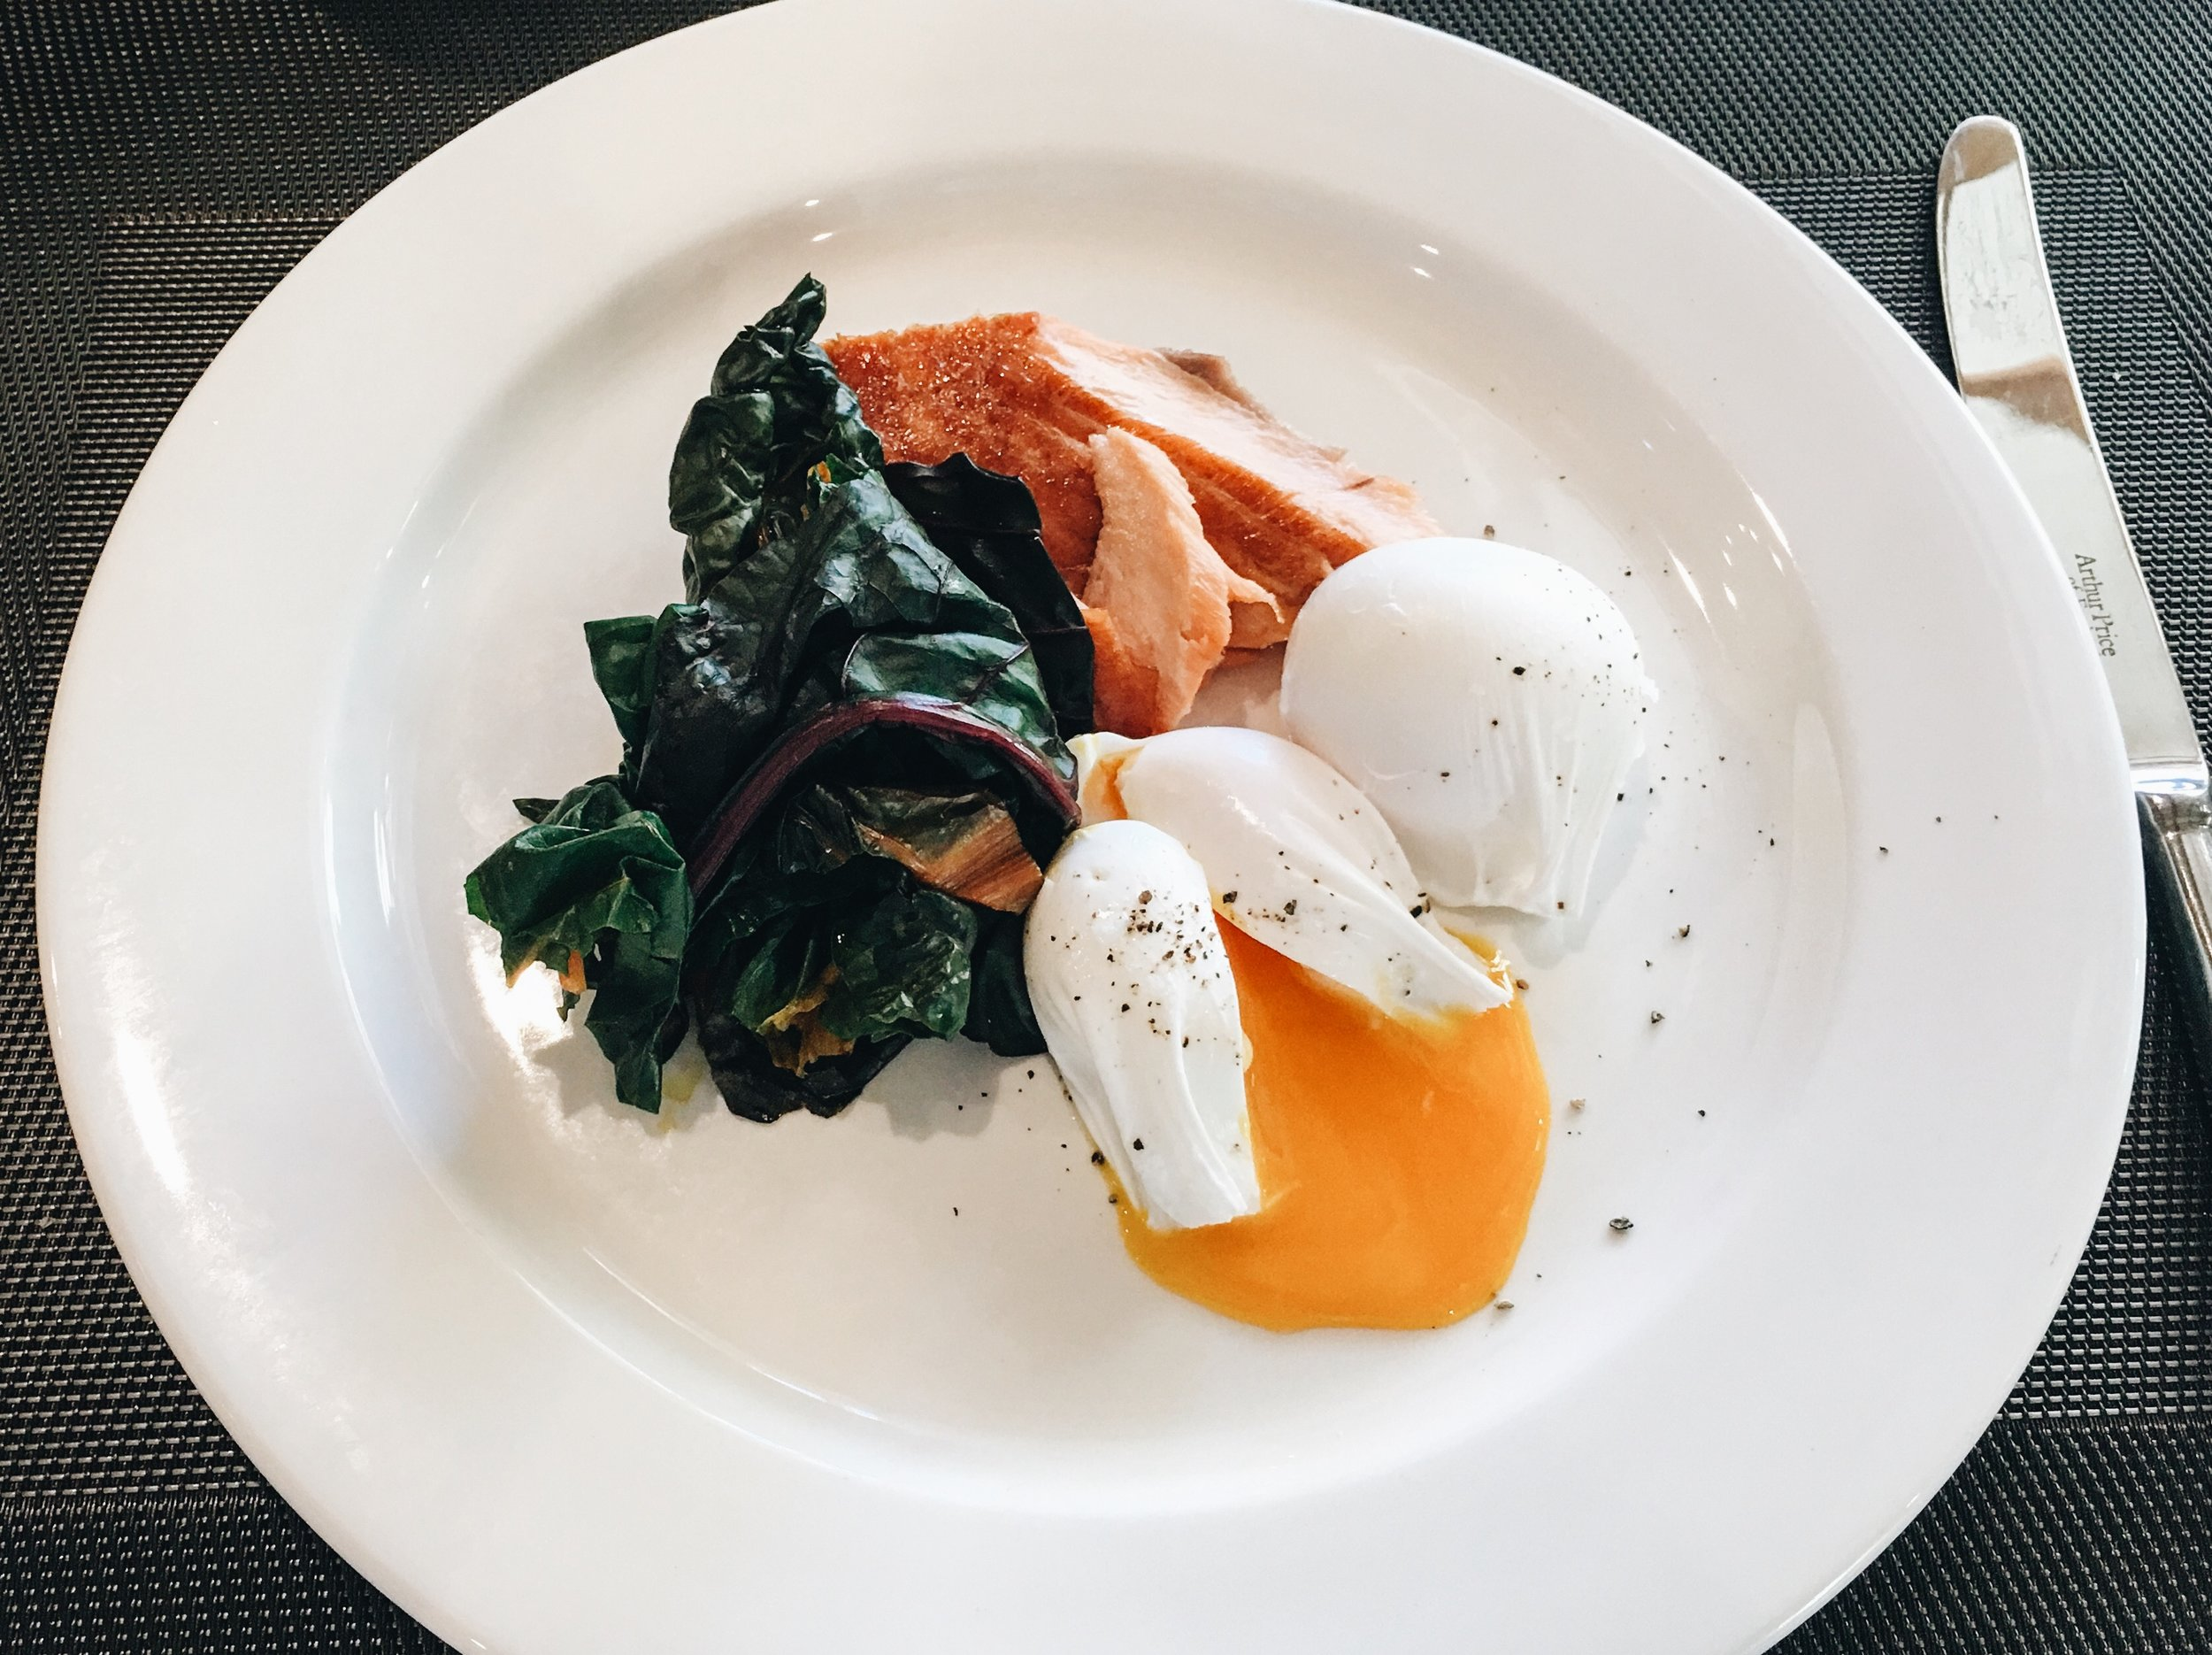 Poached Eggs with Smoked Salmon, Thyme, Southrop